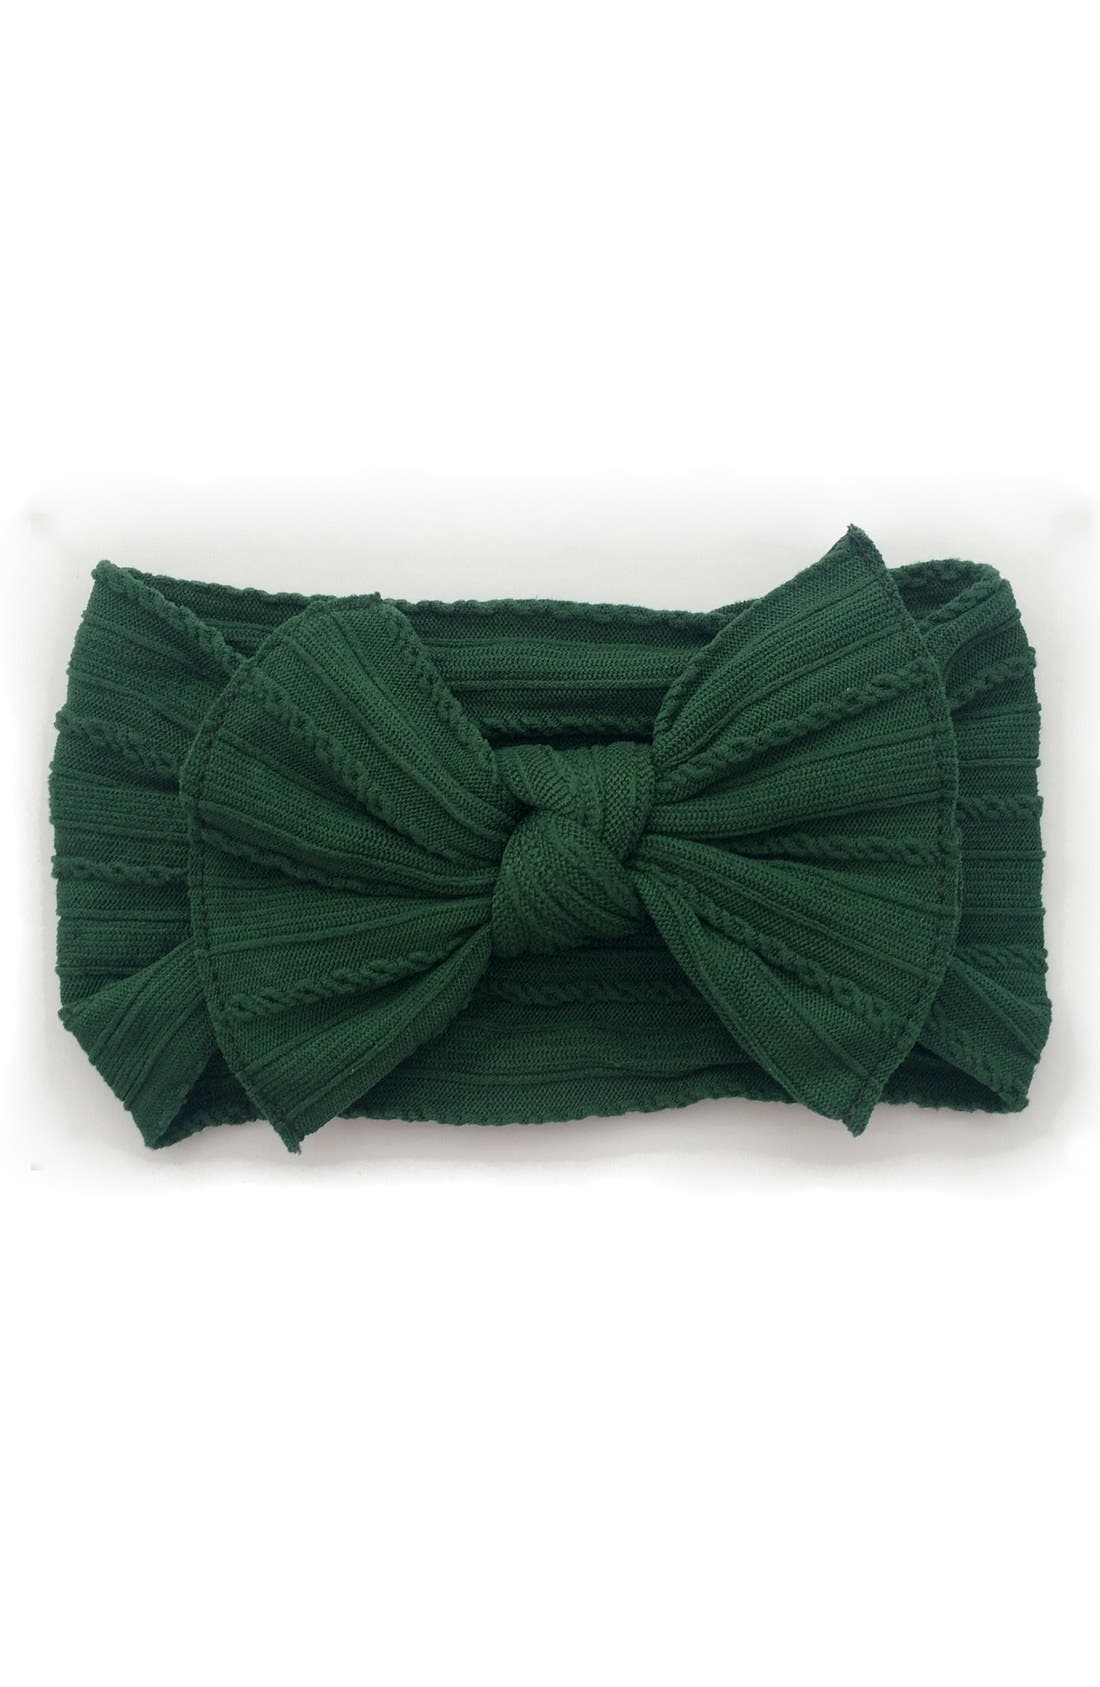 Alternate Image 1 Selected - Baby Bling Bow Headband (Baby)